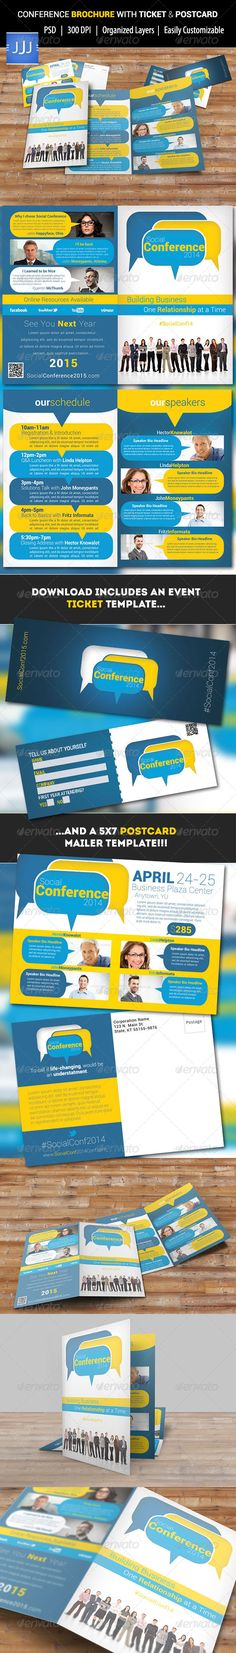 GOLDEN STYLE brochure template by Tzochko on Creative Market - conference brochure template